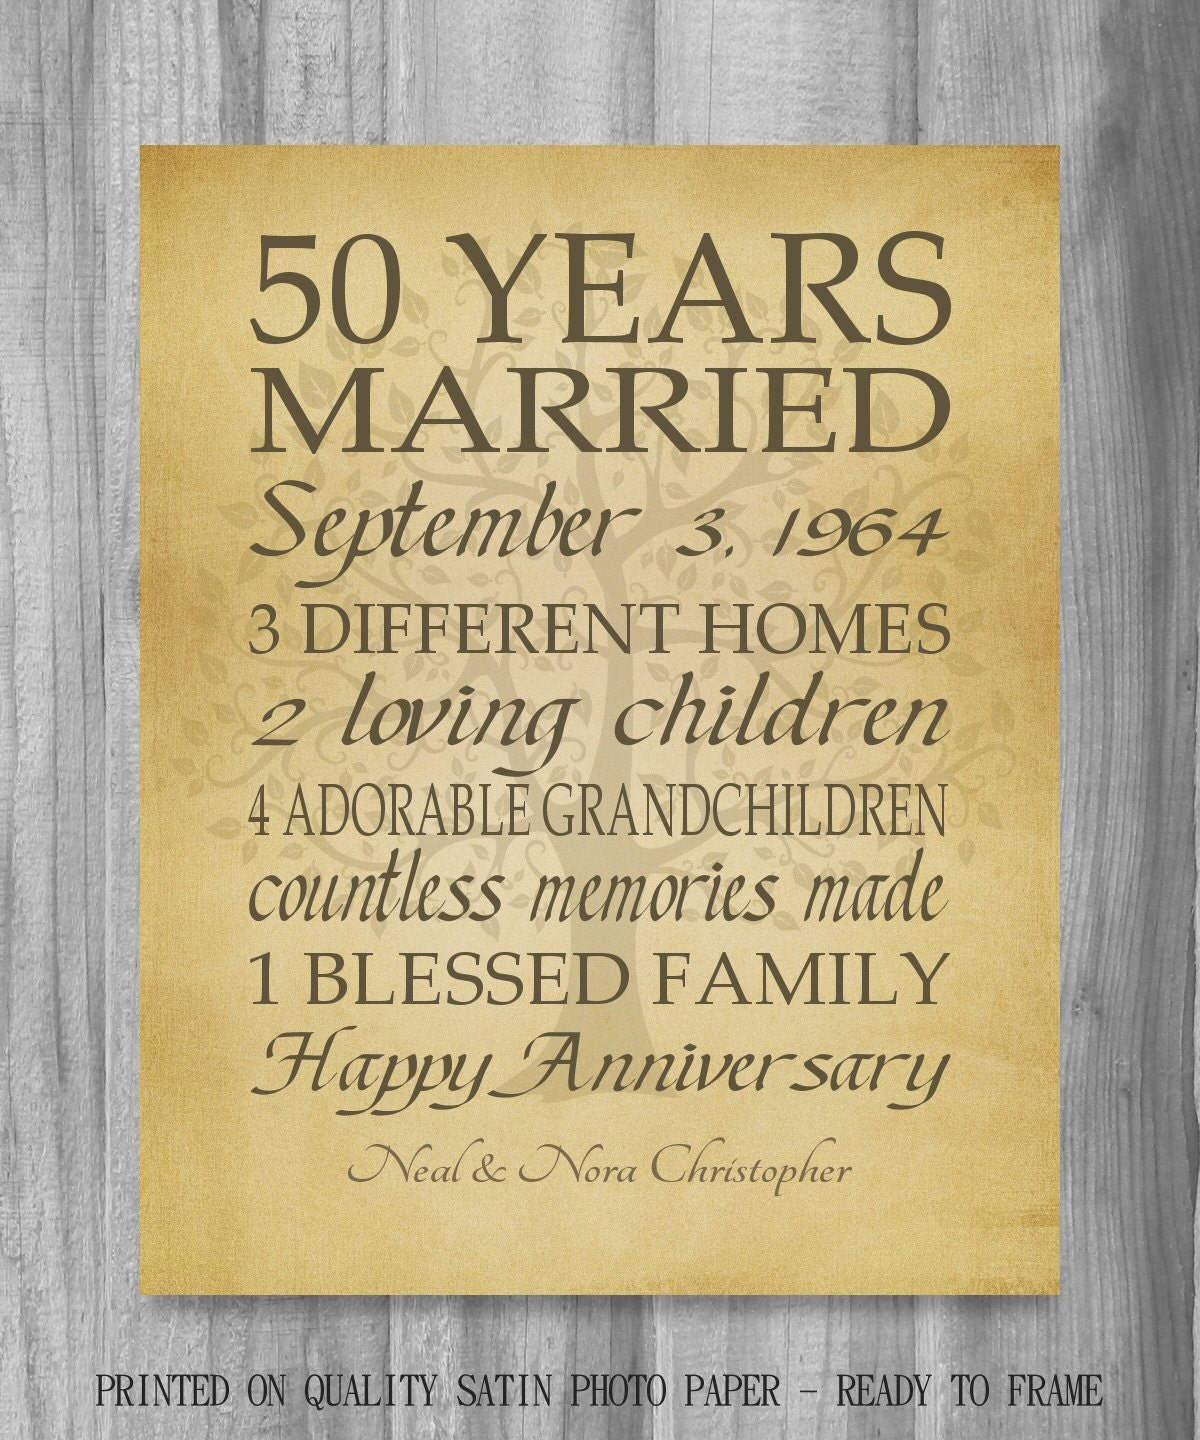 Gift Ideas For 50th Wedding Anniversary For Parents: 50th Anniversary Gift Golden Anniversary 50 Years Personalized